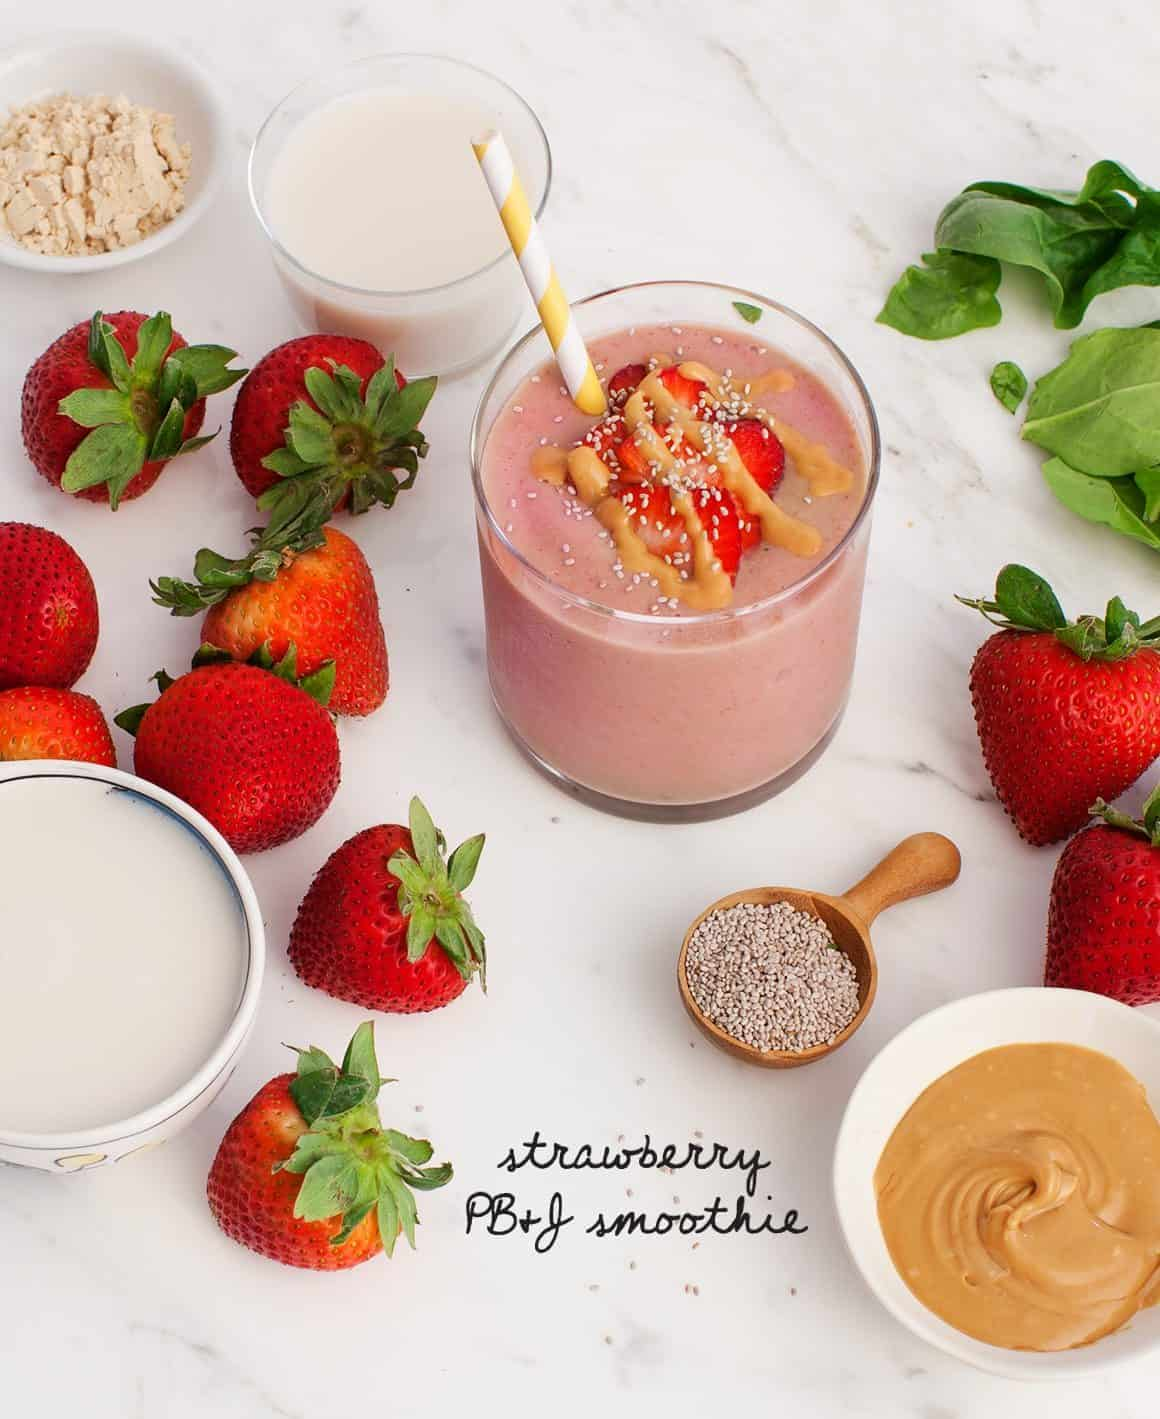 Strawberry PB&J Smoothie